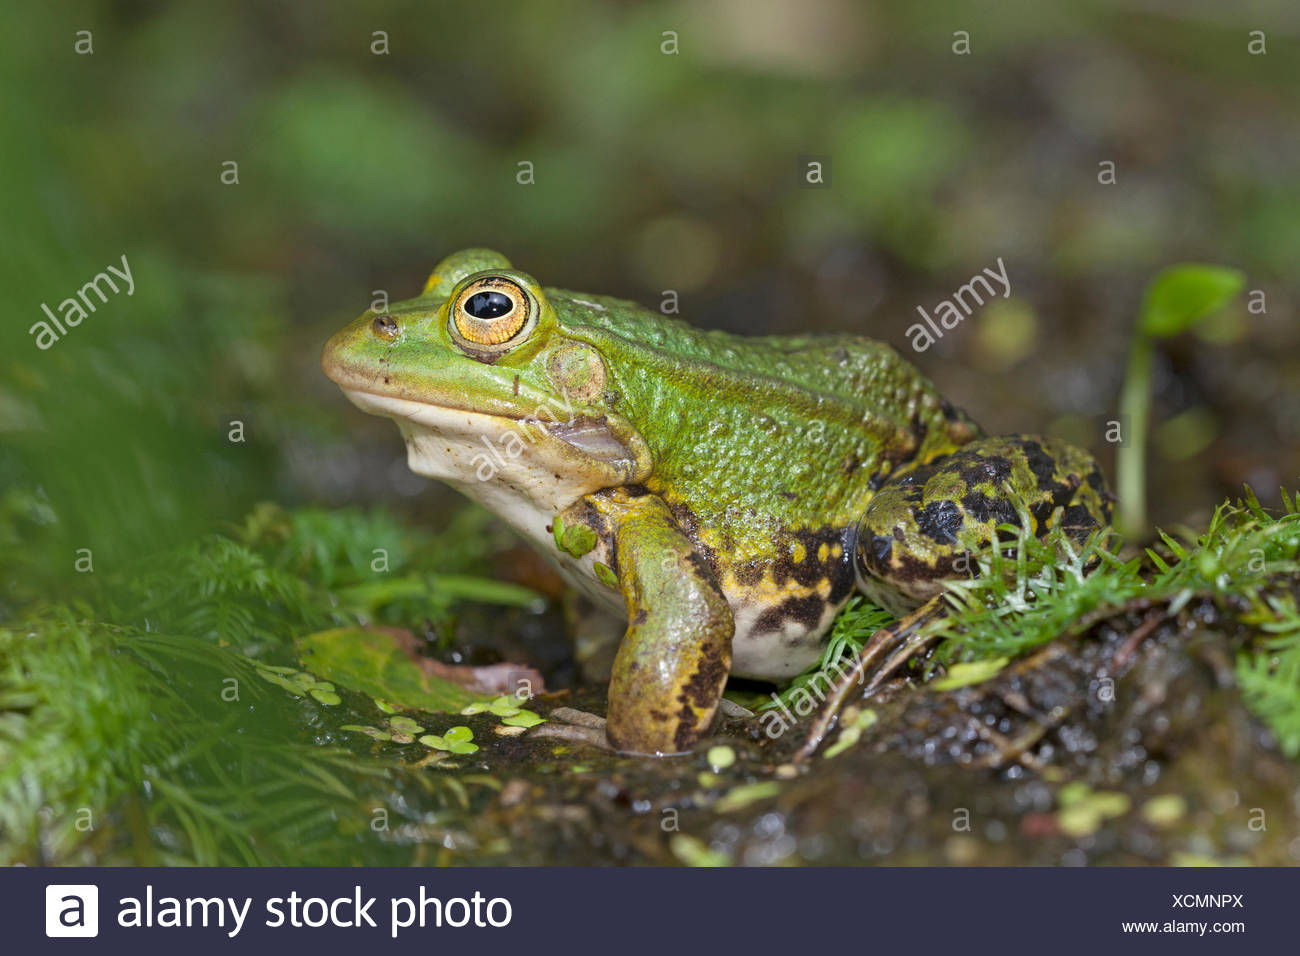 pool frog resting on shore - Stock Image